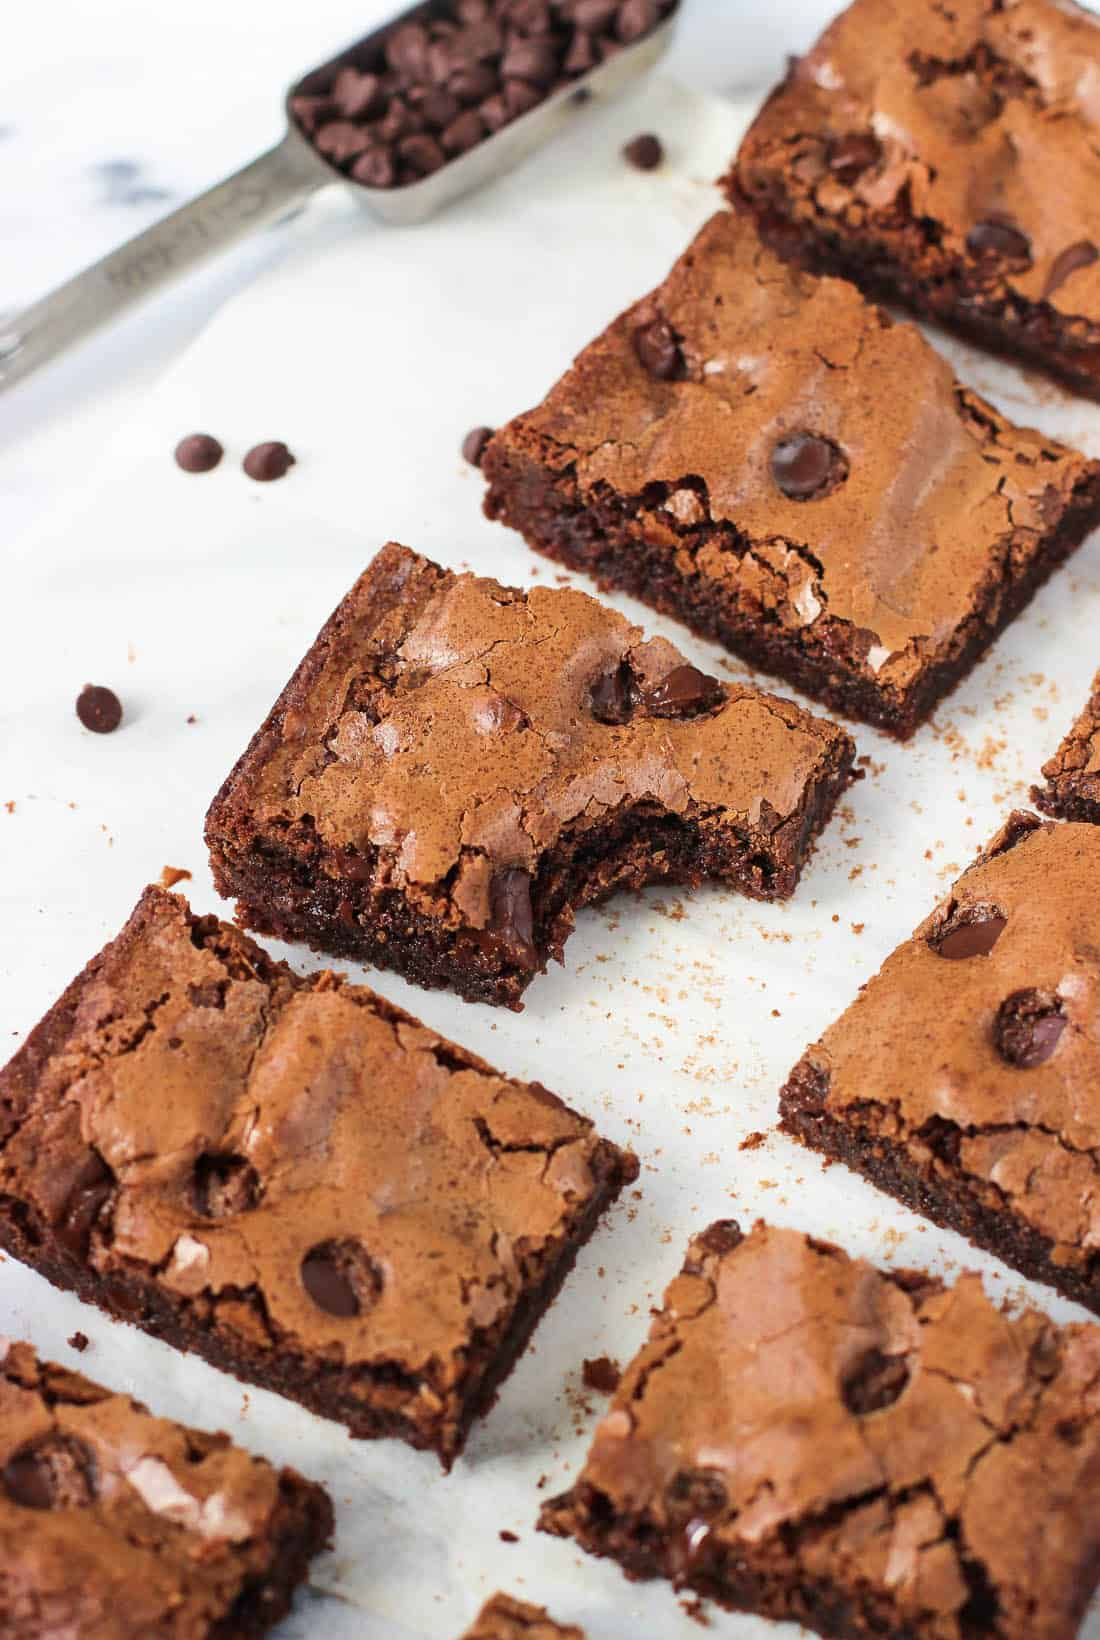 This recipe for one bowl small-batch brownies makes just ten average-sized brownies, making them perfect for those times you'd like to indulge in moderation. These brownies are fudgy and feature the classic shiny, crackly tops.